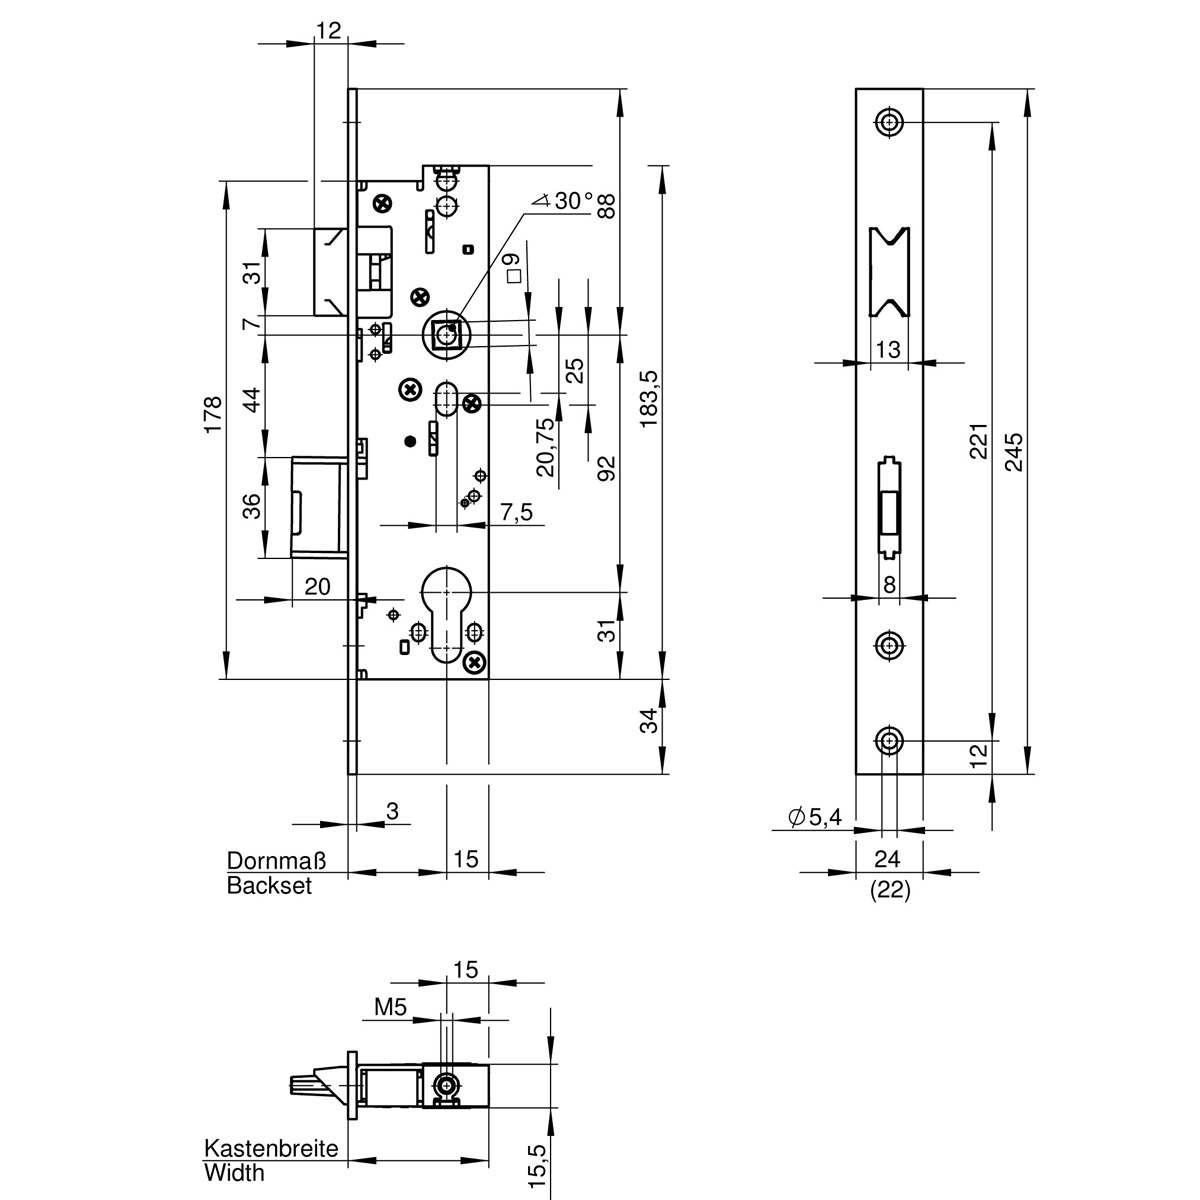 657z Emergency Exit Mortise Lock For Single Leaf Metal Frame Doors Diagram Electronic Canary Also Iso Din Connector Wiring Technical Drawingde De 011 Mb